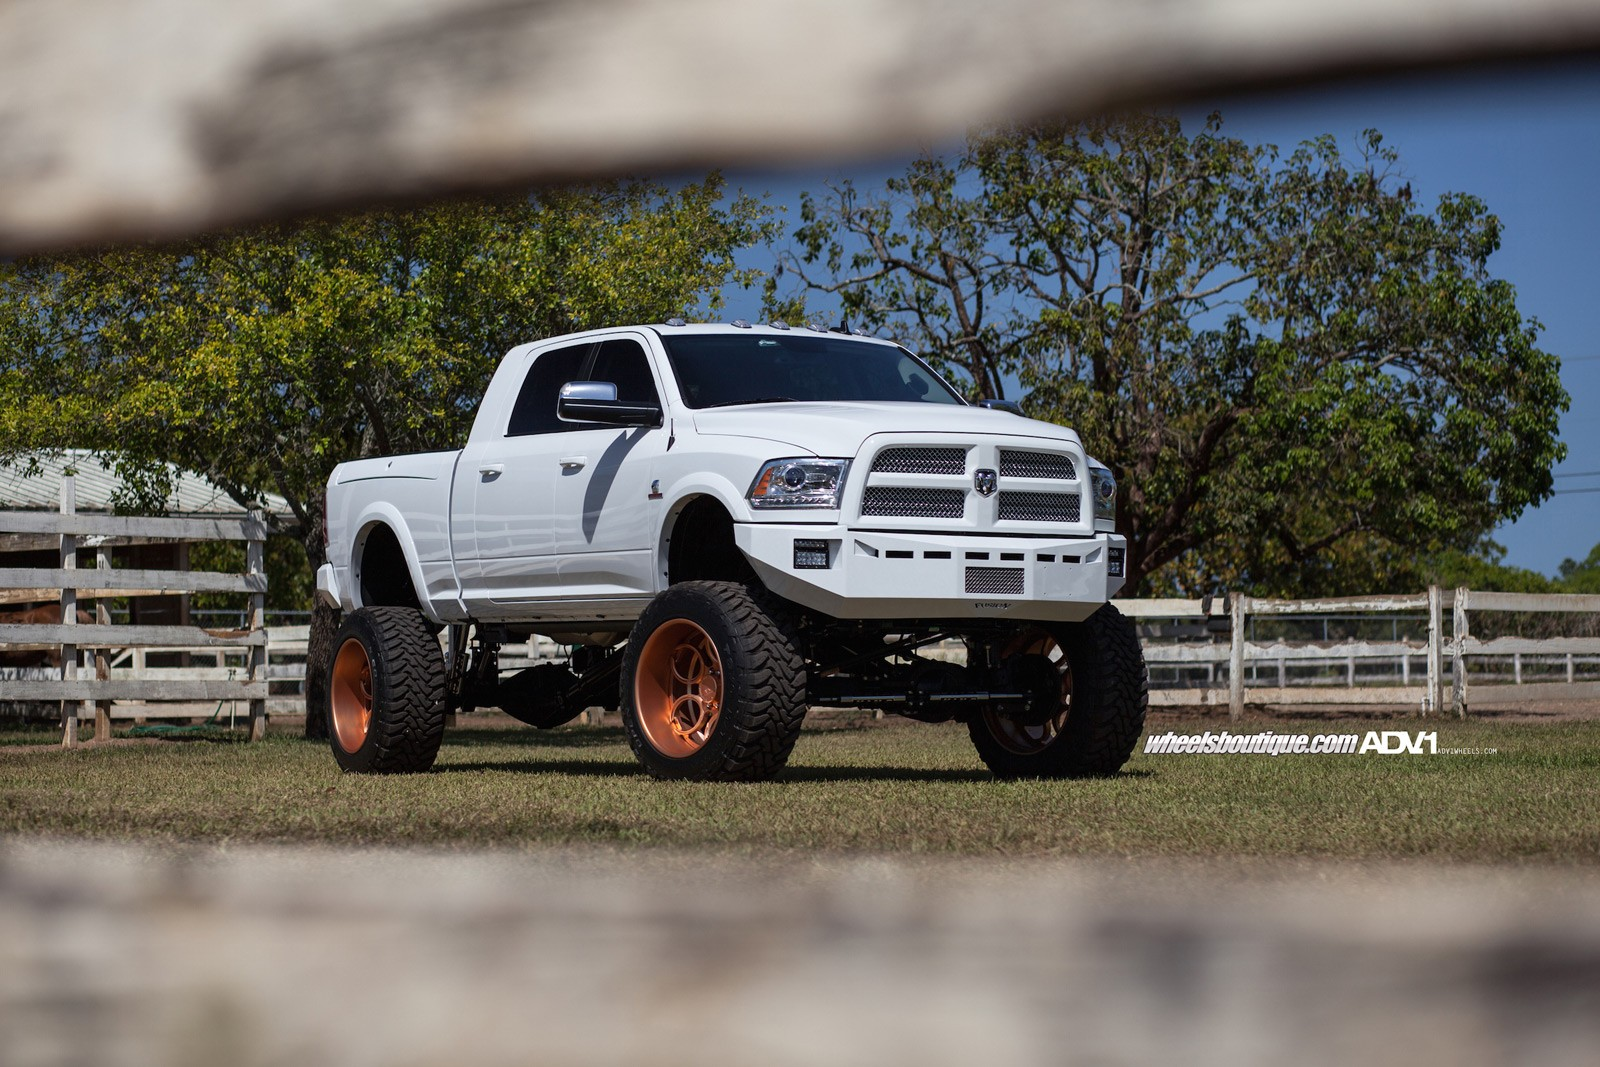 Old Dodge Ram >> Lifted Ram 2500 On Rose Gold Wheels Meets a Horse - autoevolution